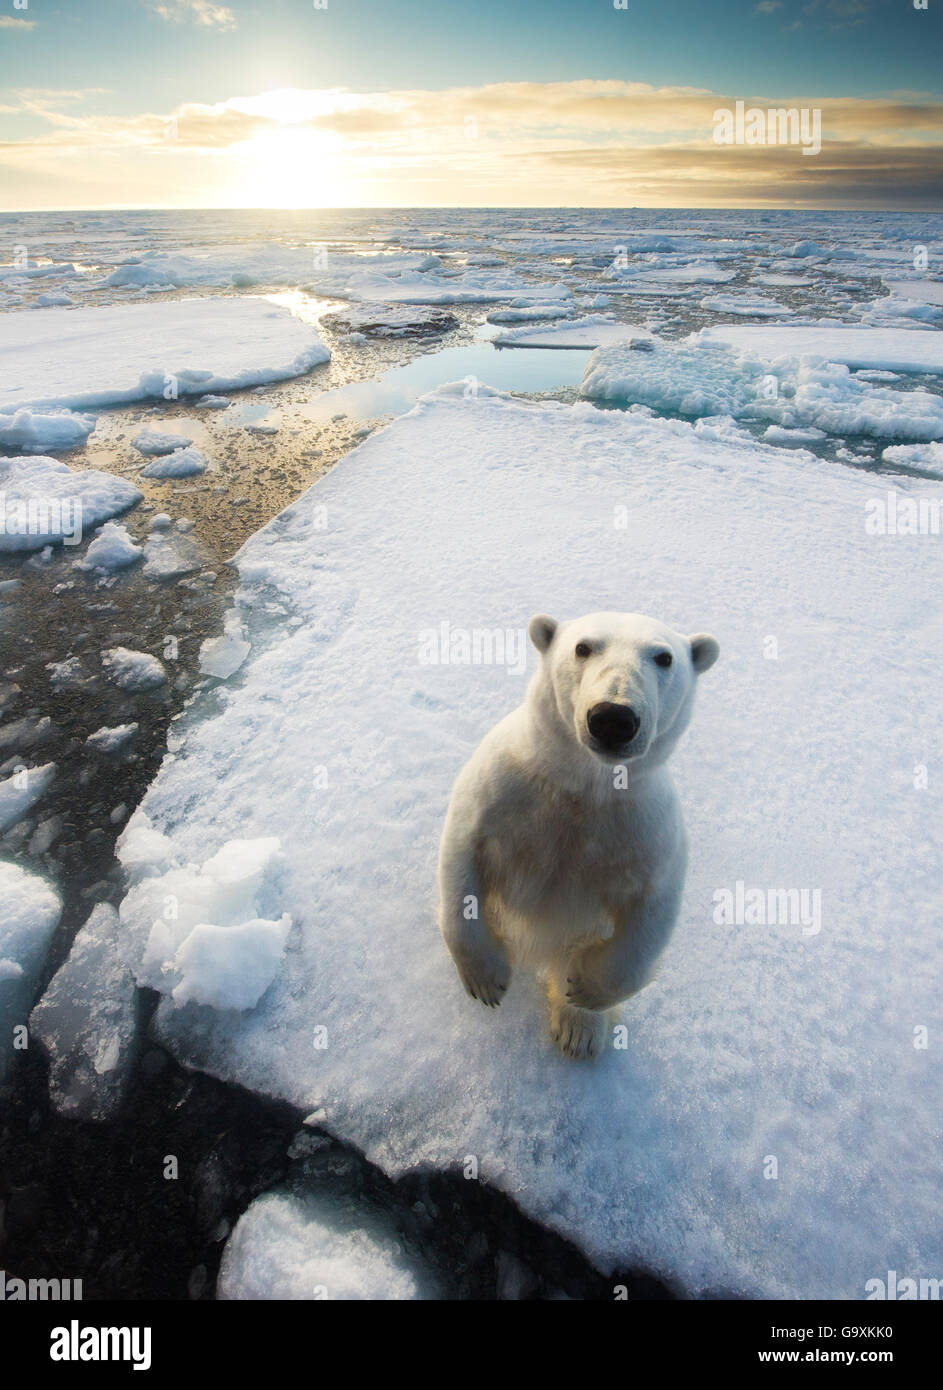 Polar bear (Ursus maritimus)  standing on ice floe, looking at camera. Svalbard, Norway. August. - Stock Image